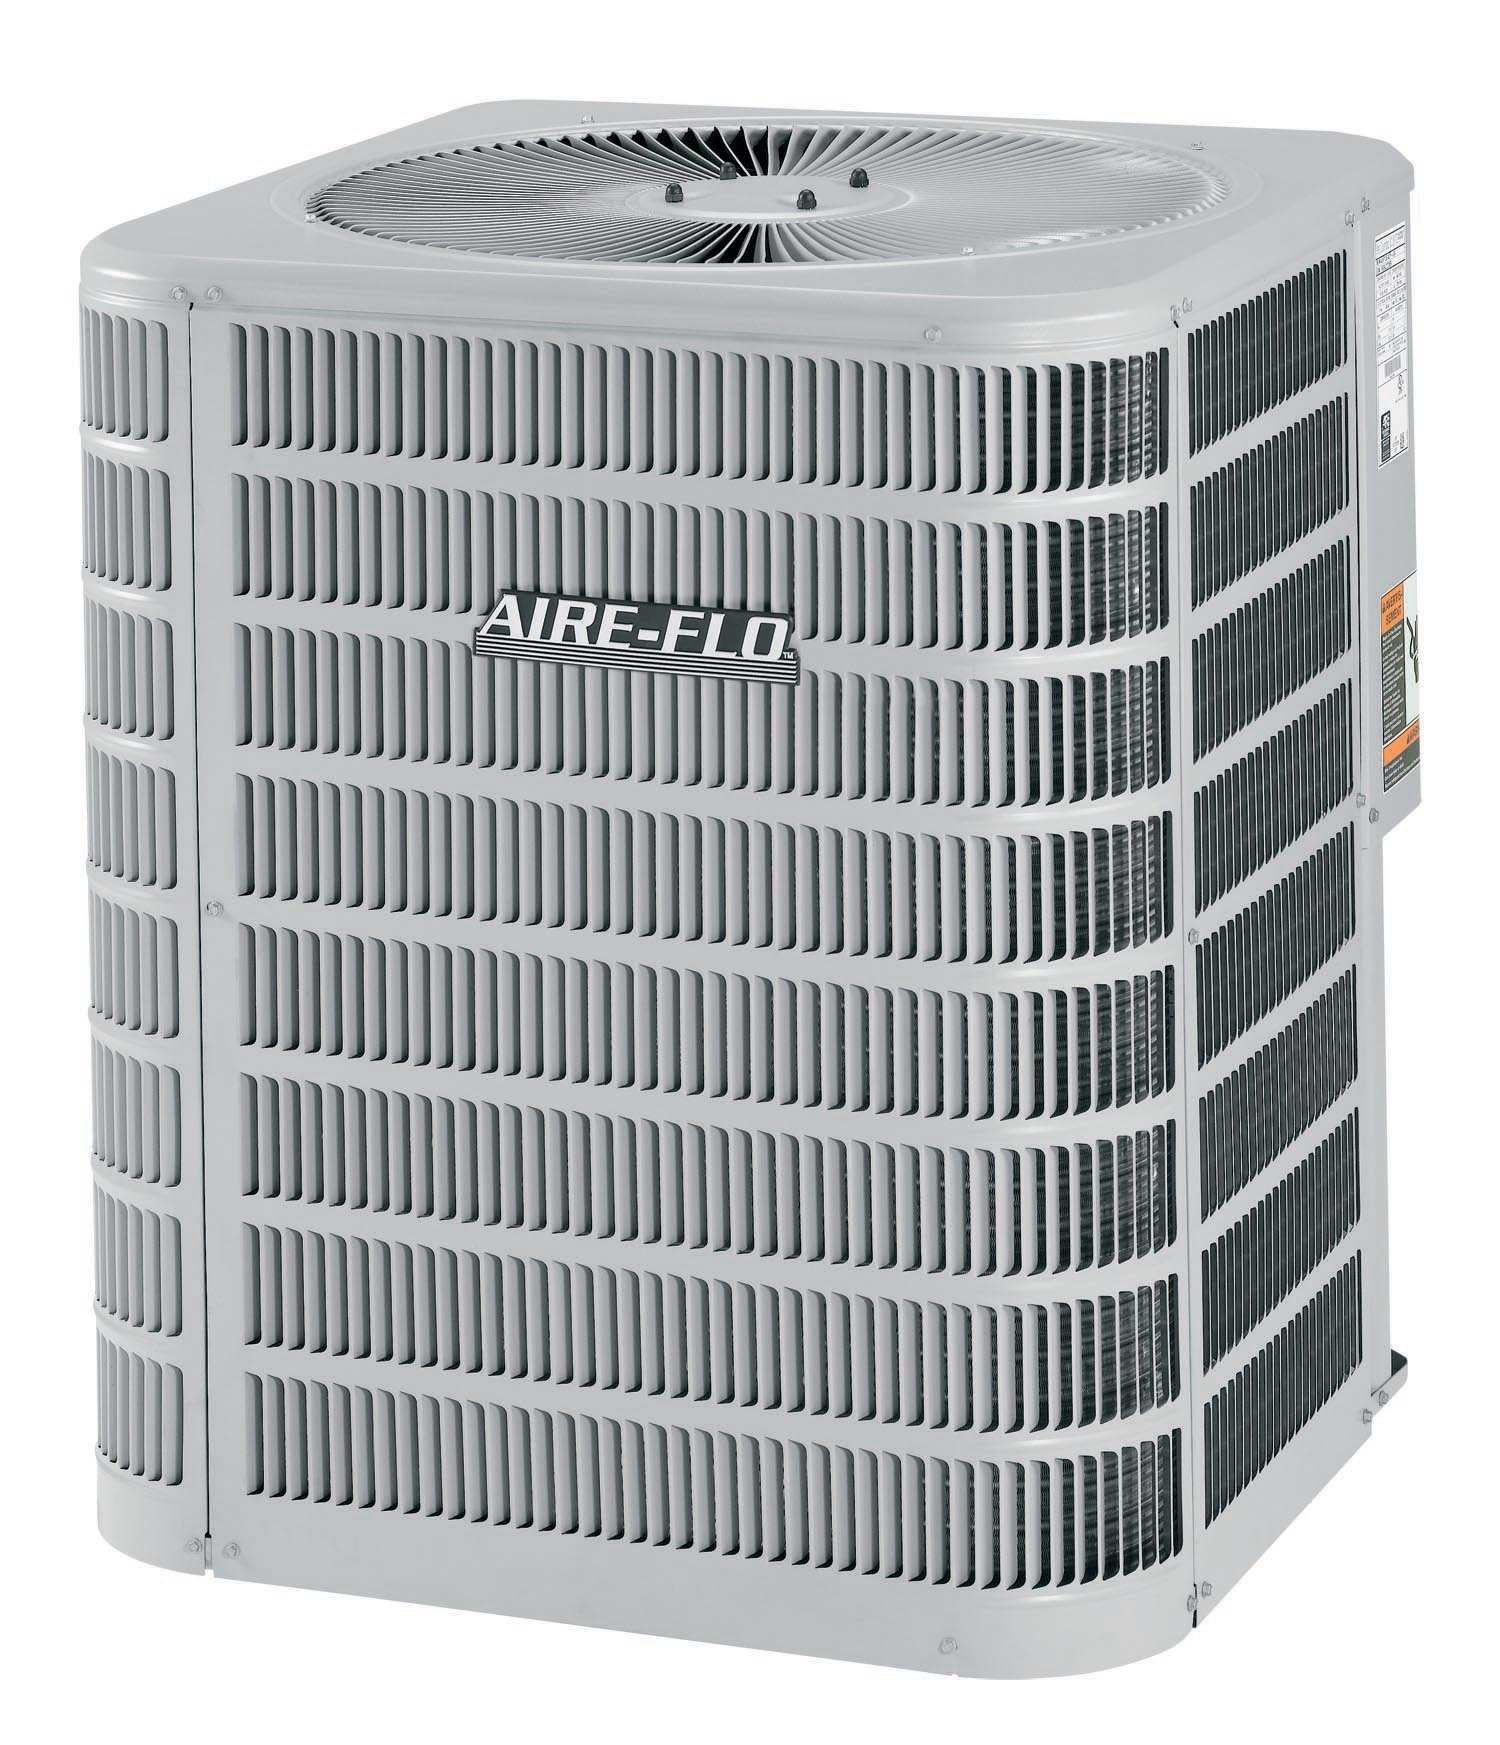 Aire Flo 13 Seer Air Conditioners Air Conditioning